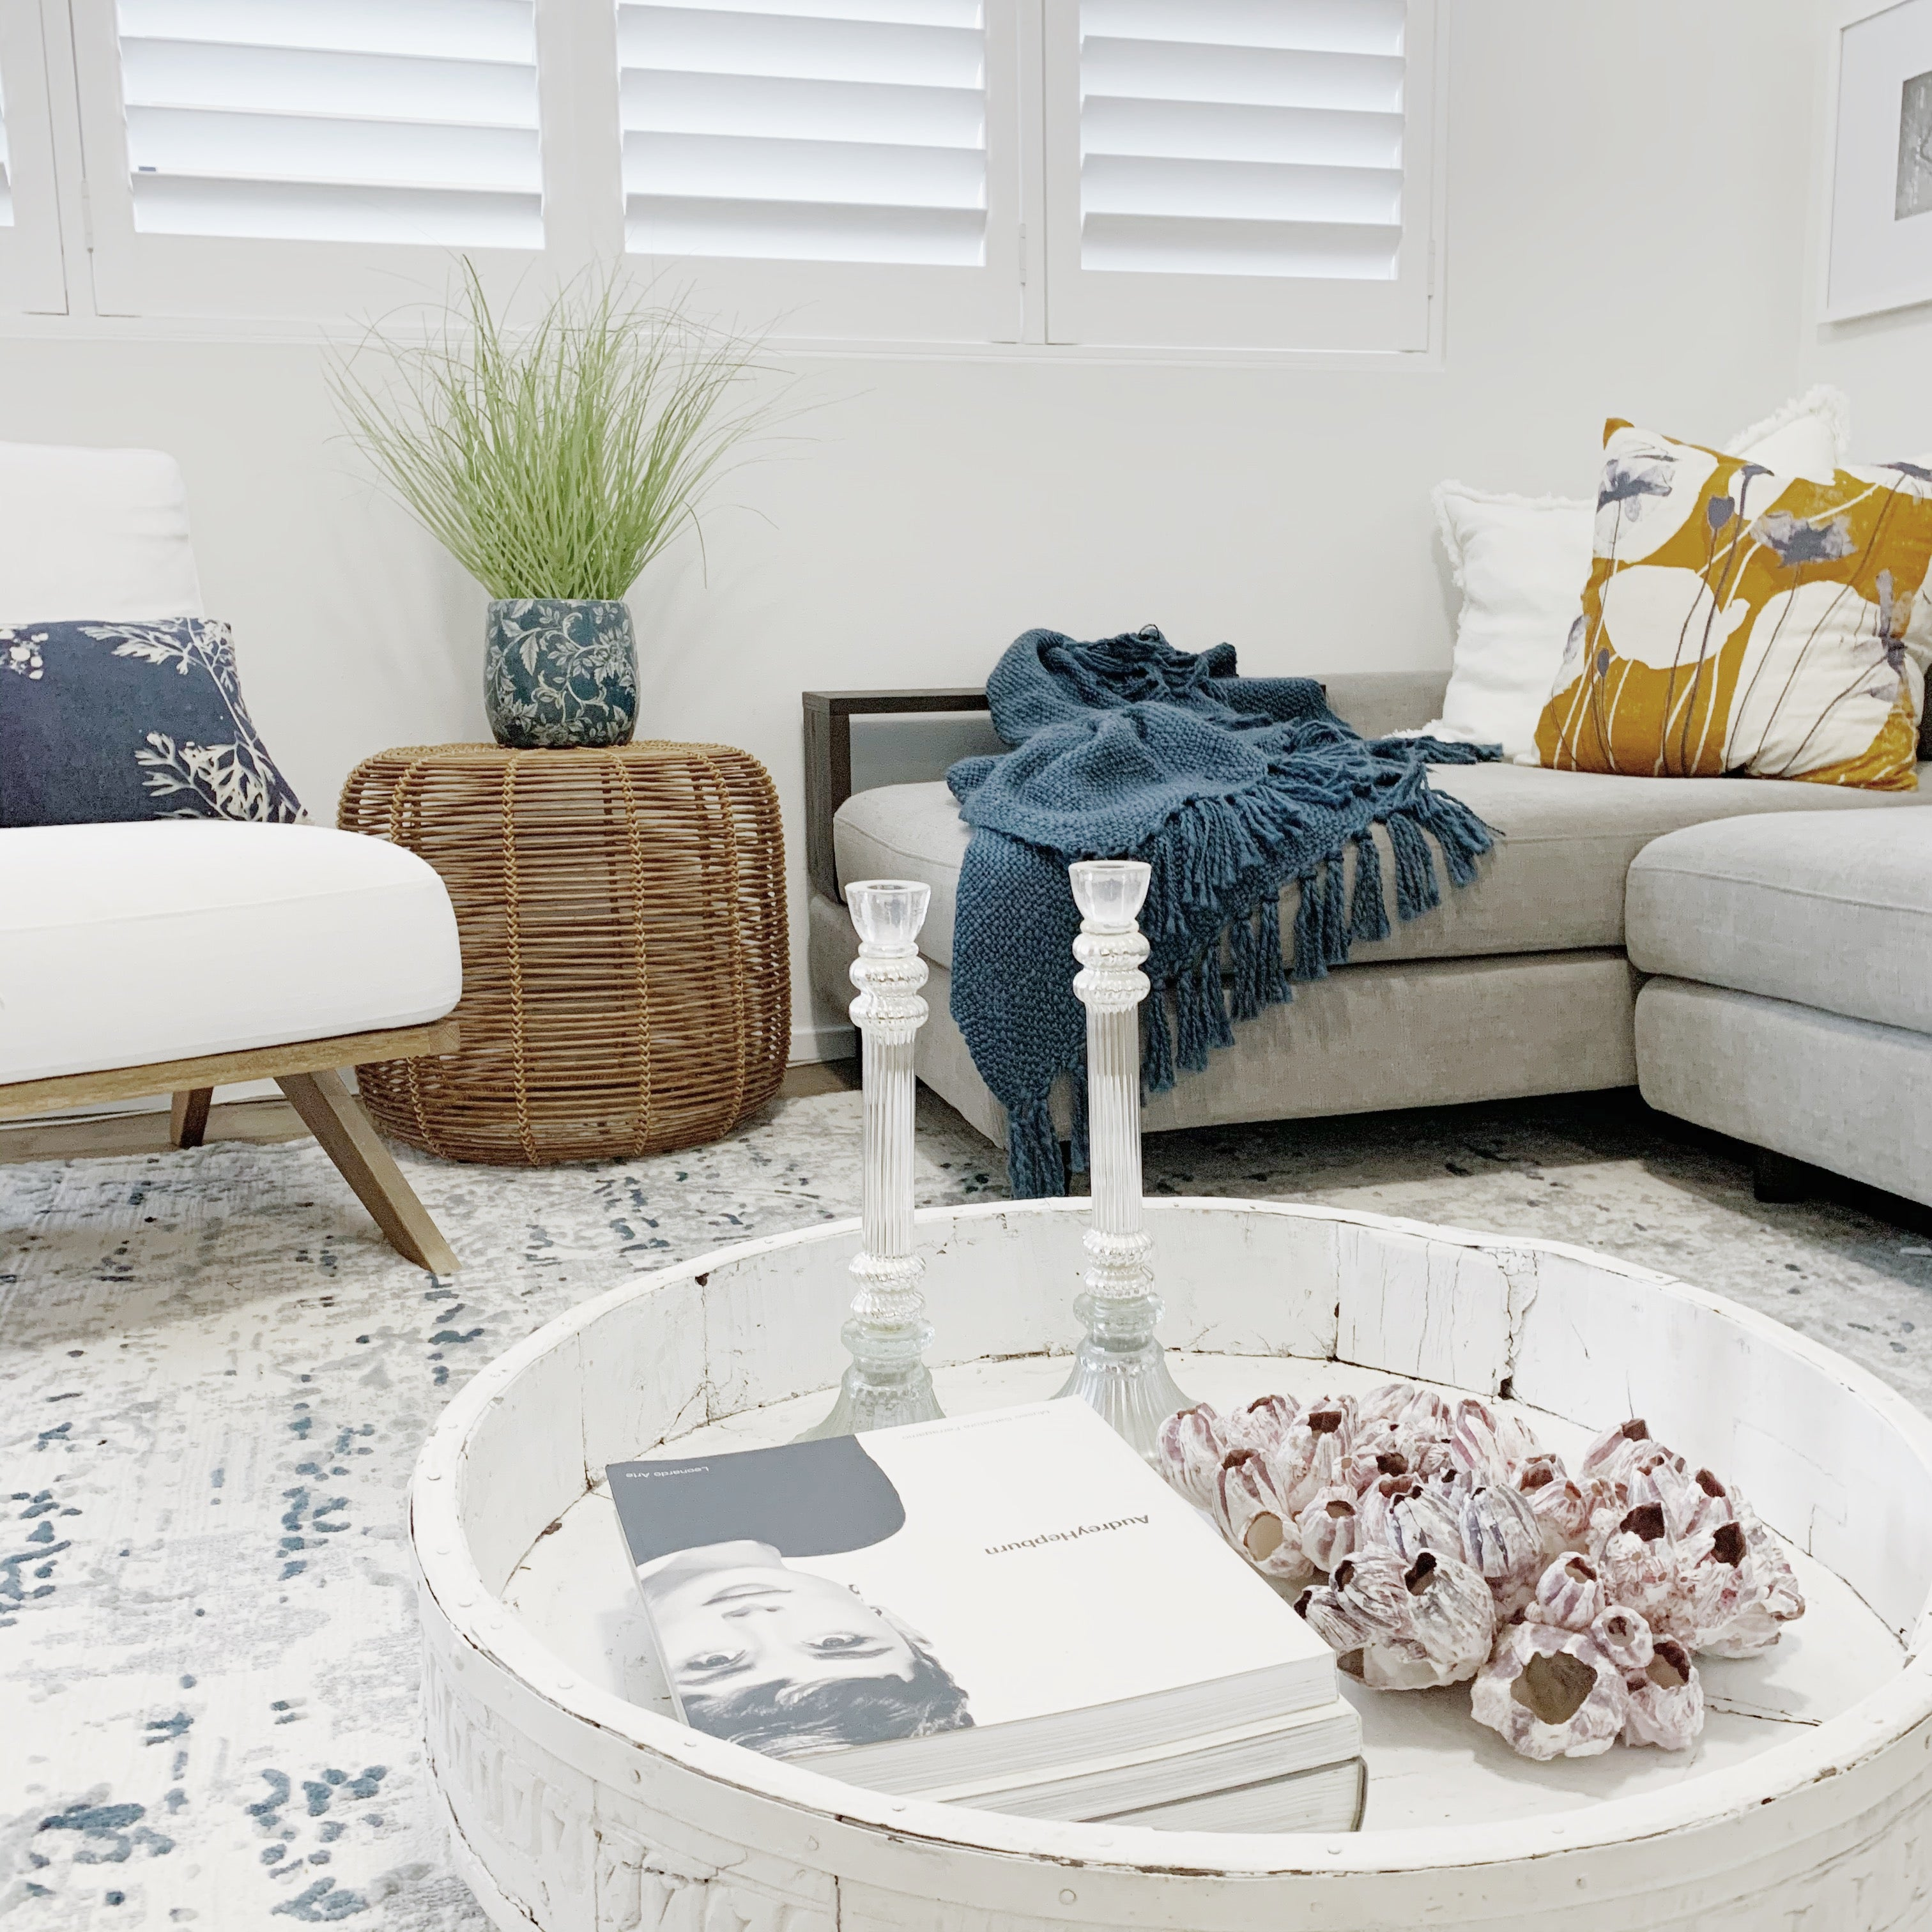 Property styling Illawarra Wollongong Kiama Gerringong Thirroul Bulli Wombarra Austinmer Southern Highlands Berry Bowral Mittagong Shellharbour Flinders Warilla Home staging interior decorating design living room bedroom